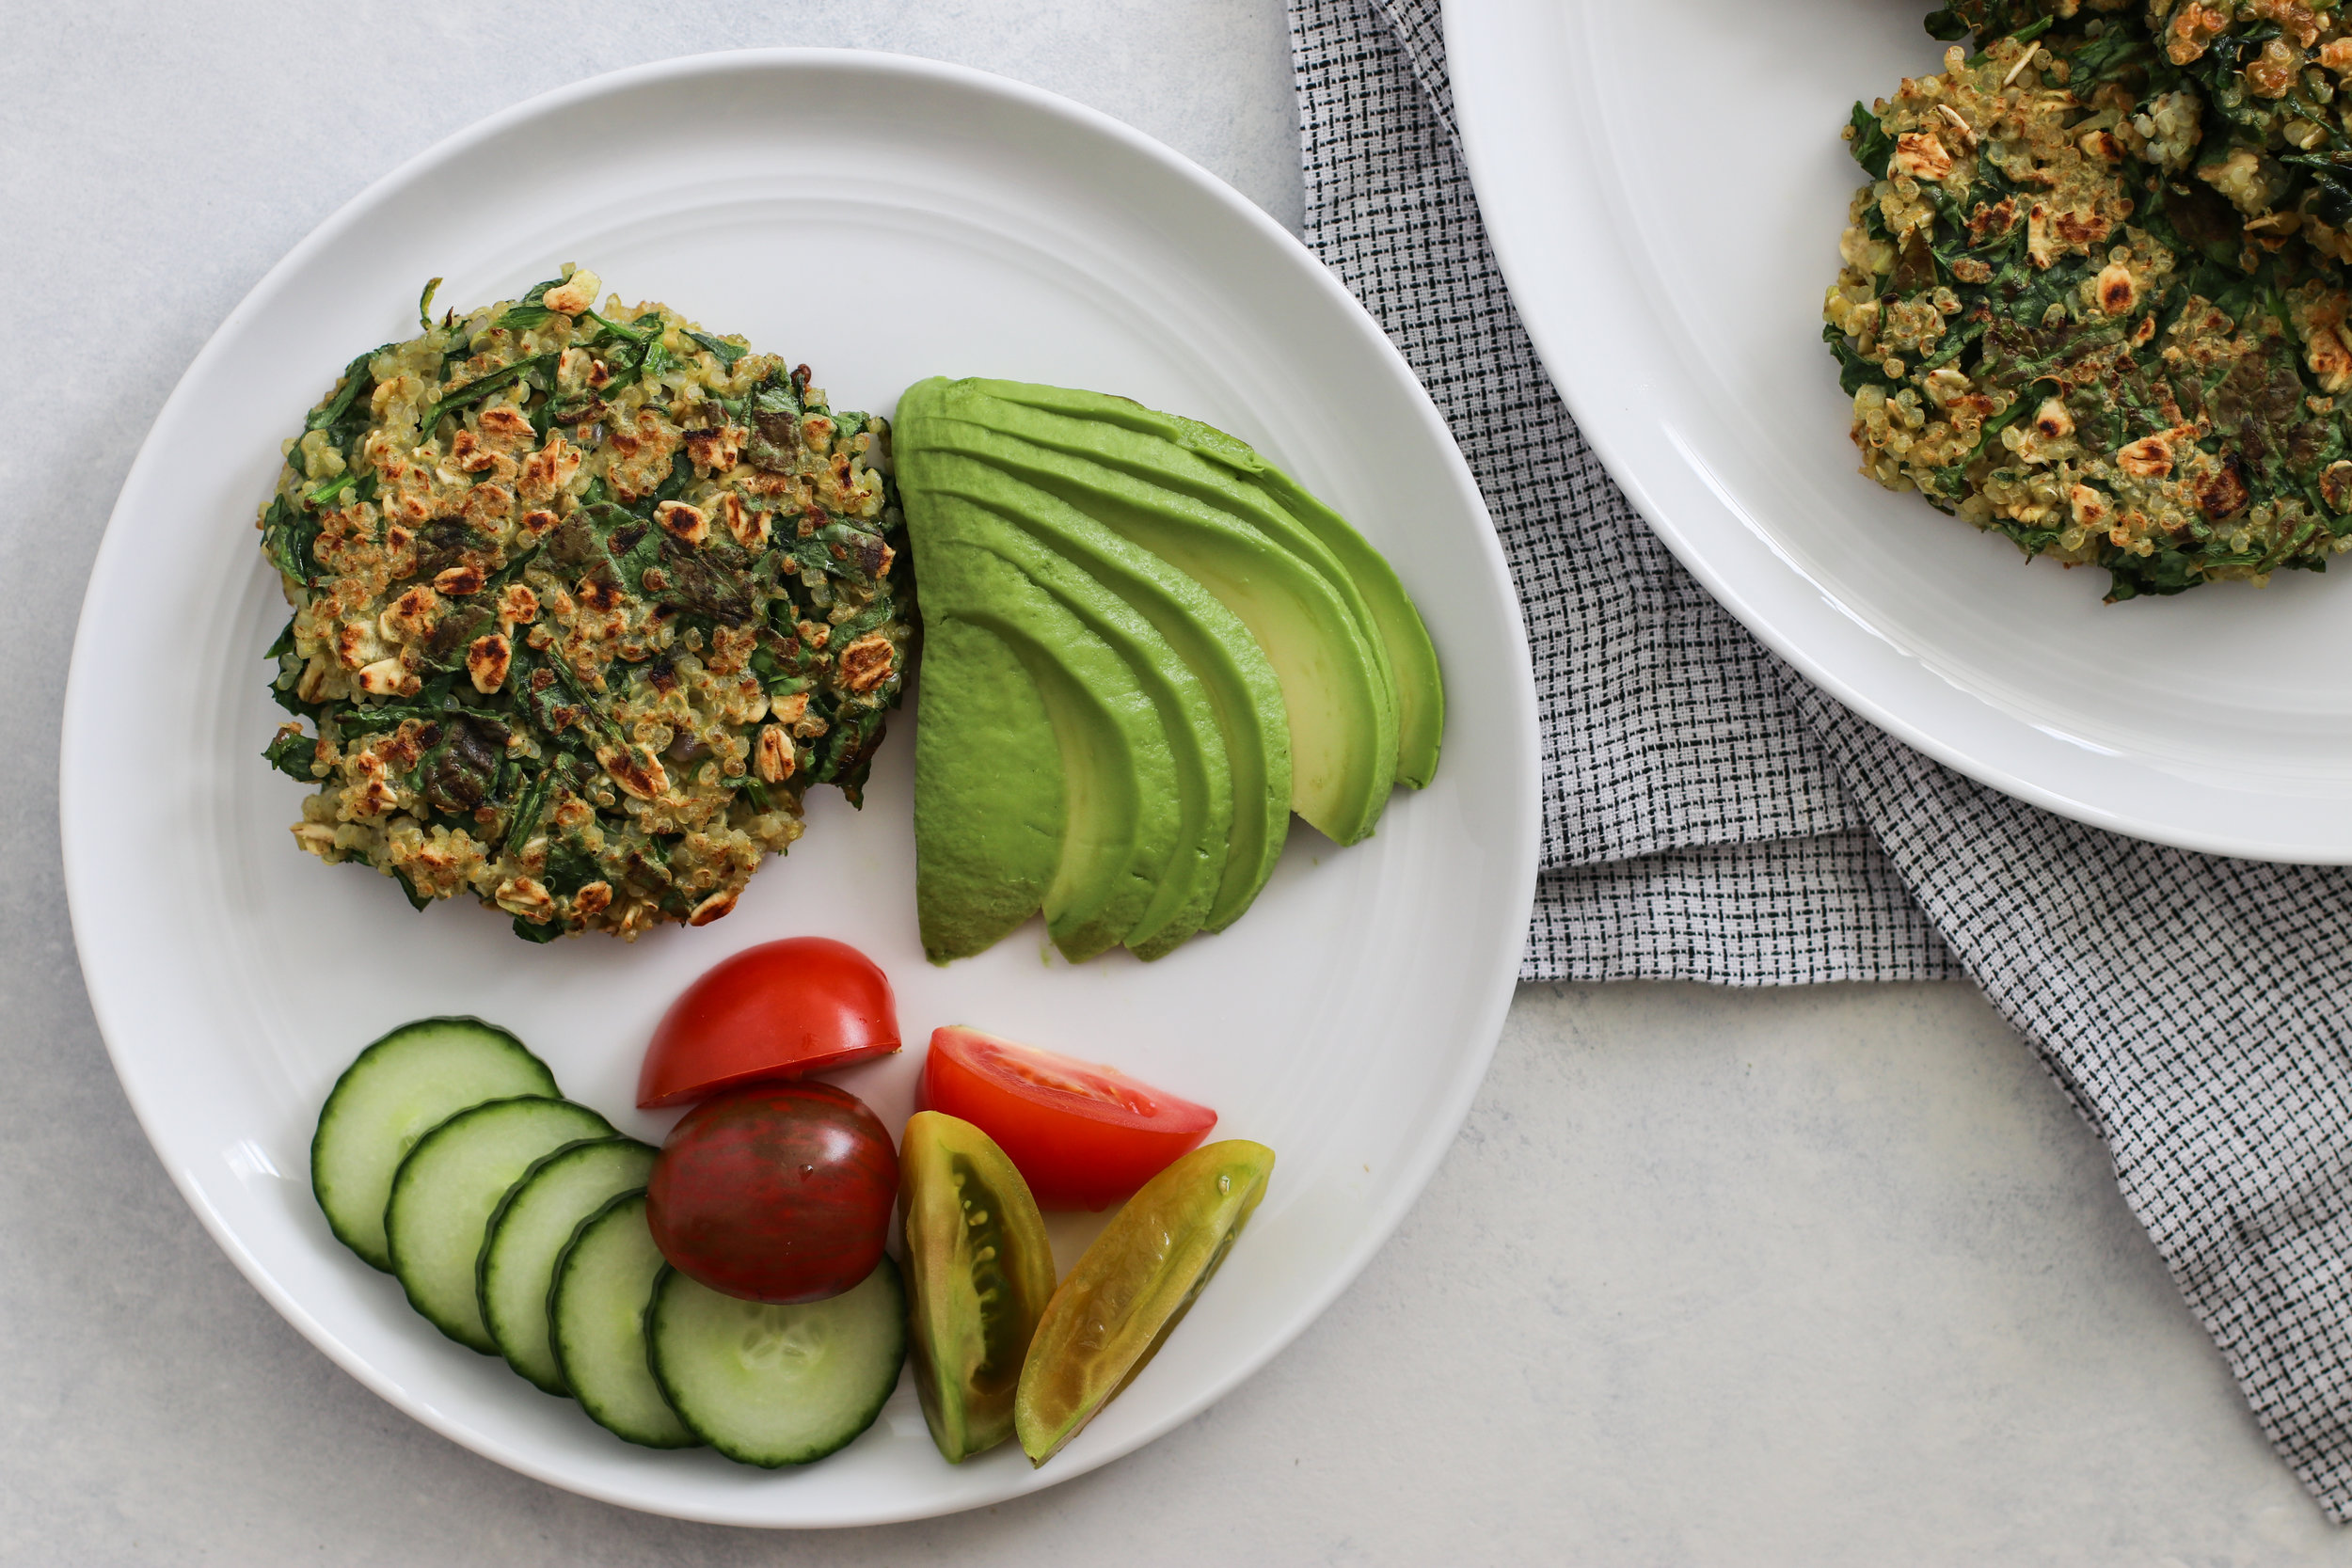 Spinach Quinao Patties 1.jpg